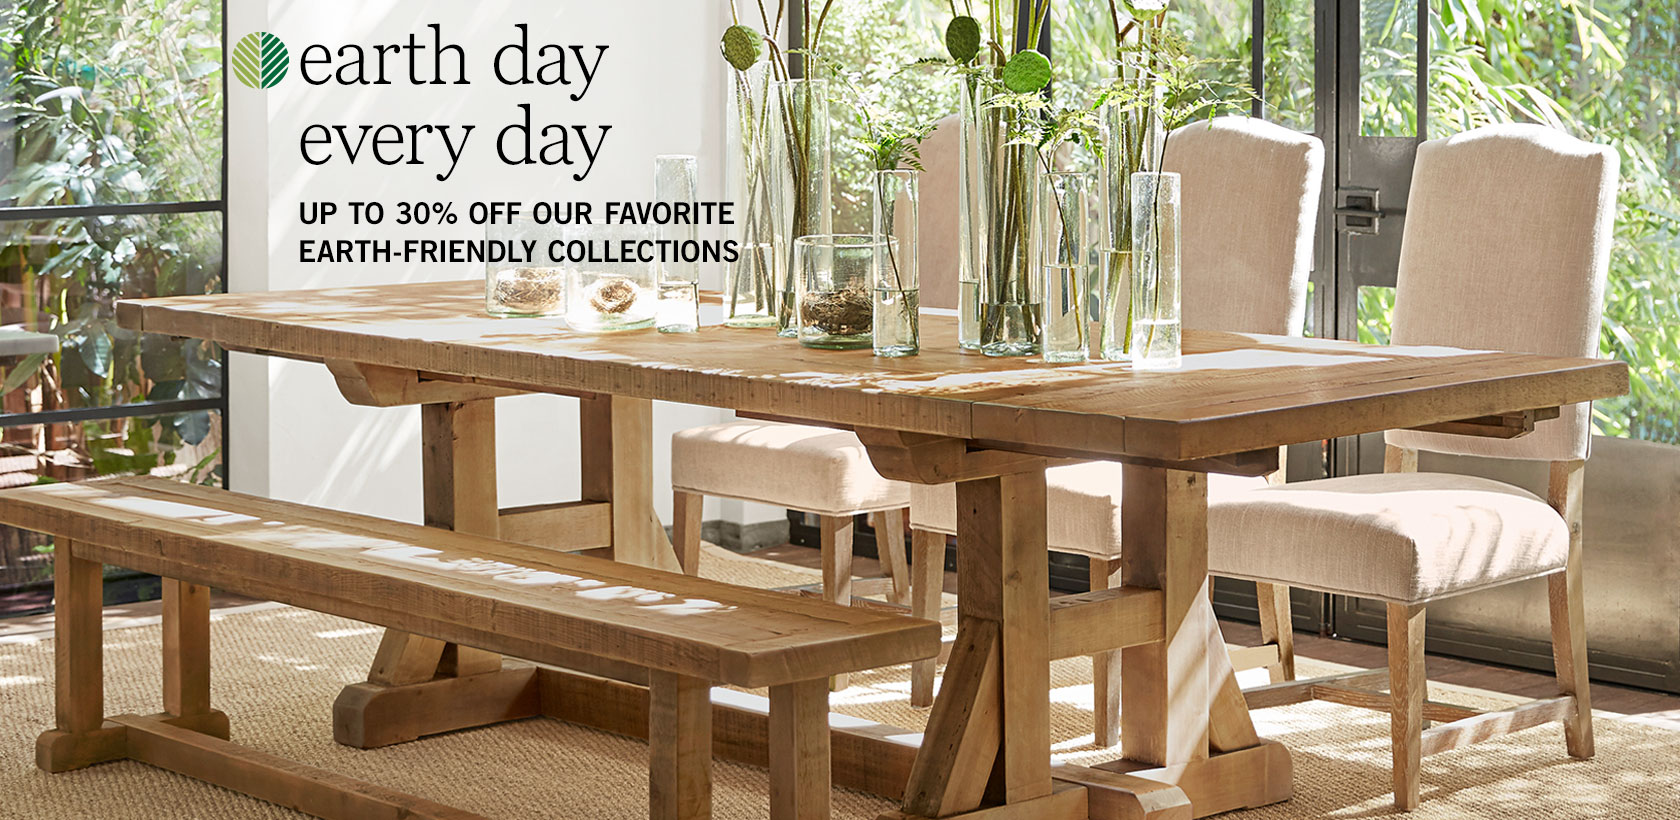 Rooms To Go Kitchen Furniture Home Furnishings Home Decor Outdoor Furniture Modern Furniture